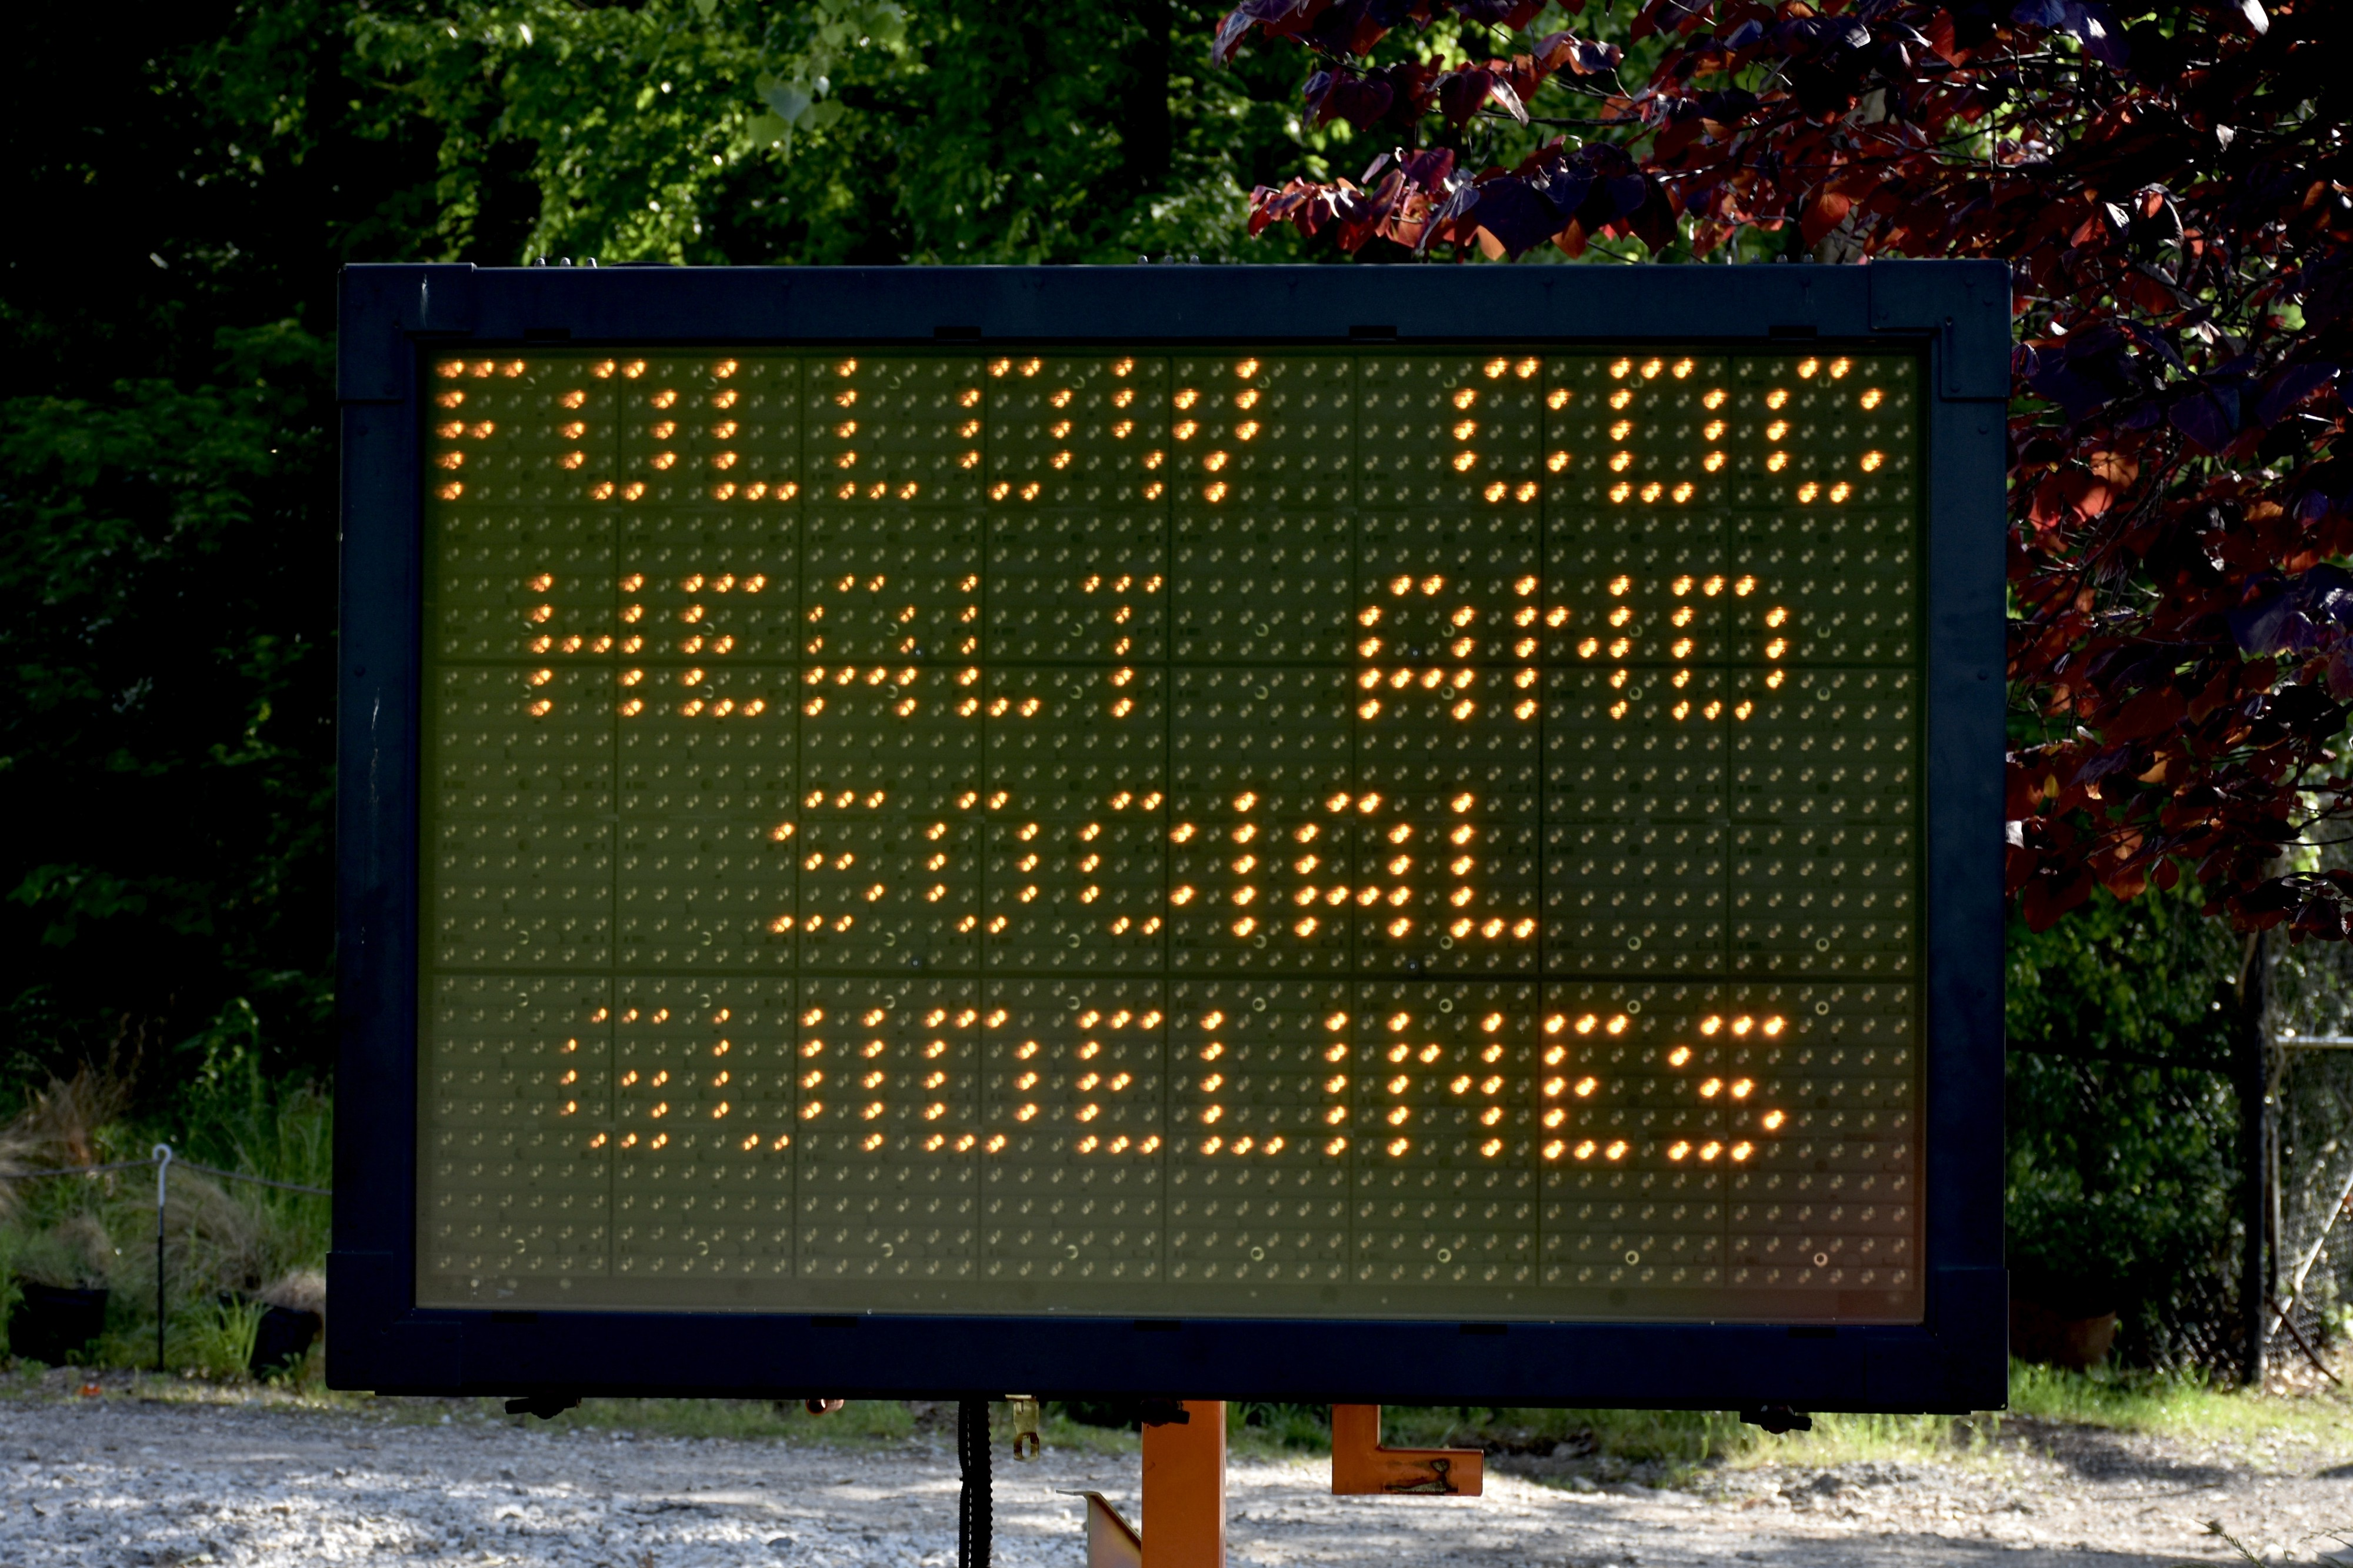 A digital traffic sign (with typo) alerts people to find and refer to CDC guidelines during the COVID-19 pandemic.